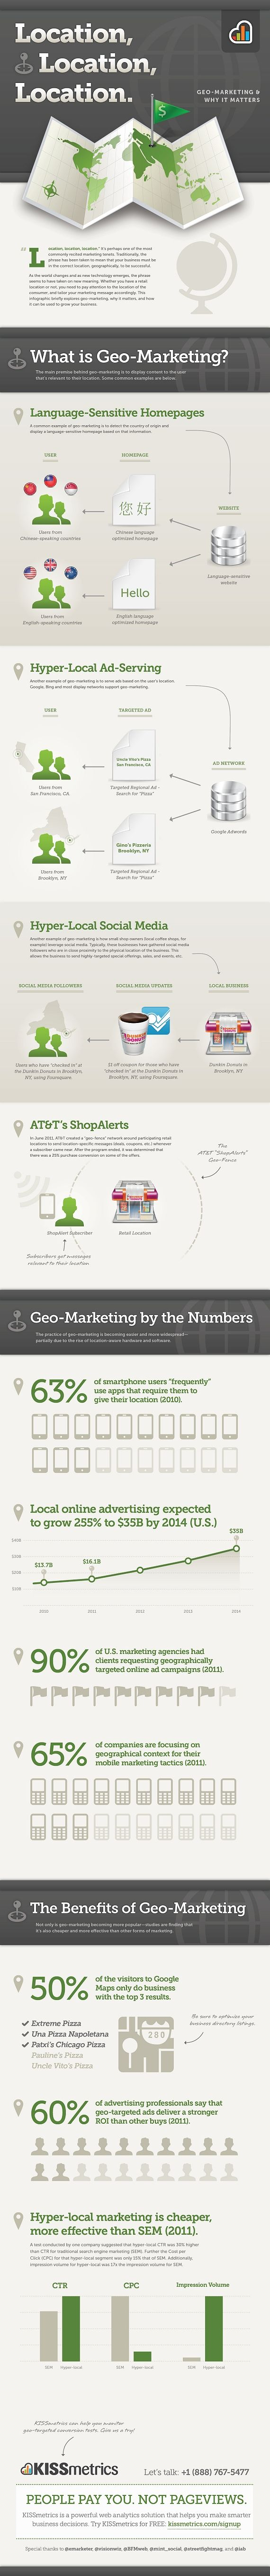 Location, Location, Location – Geo-marketing & Why it Matters